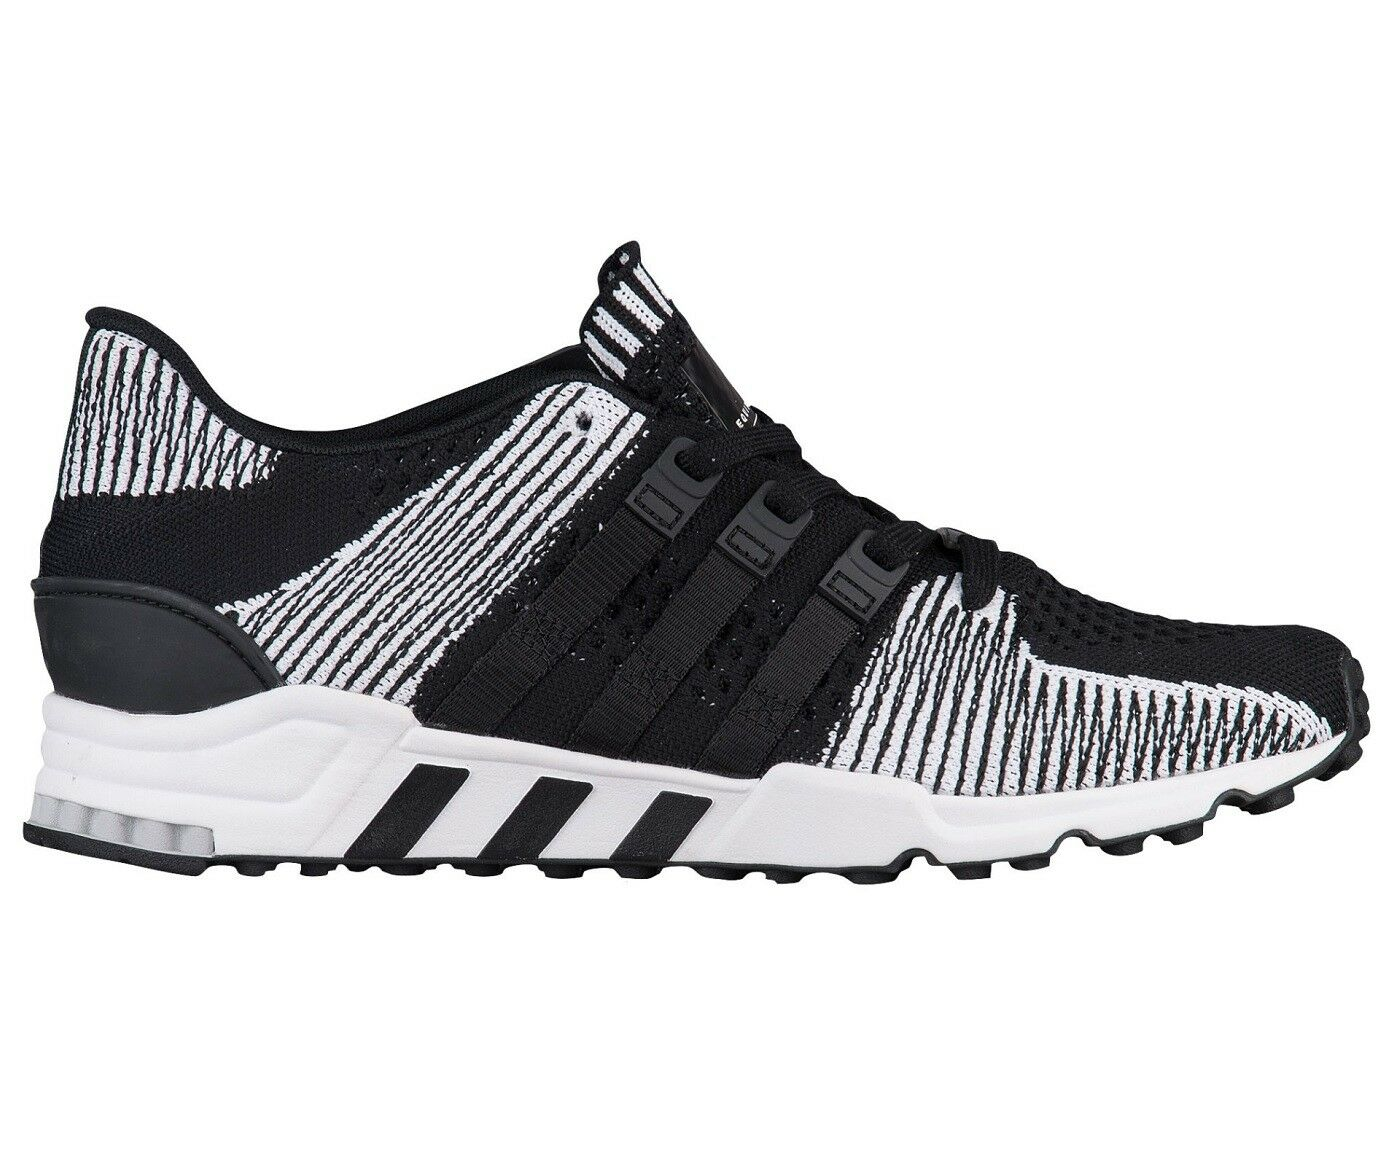 Adidas EQT Support RF BY9689 Primeknit Mens BY9689 RF Black White Running Shoes Size 7.5 c683ee